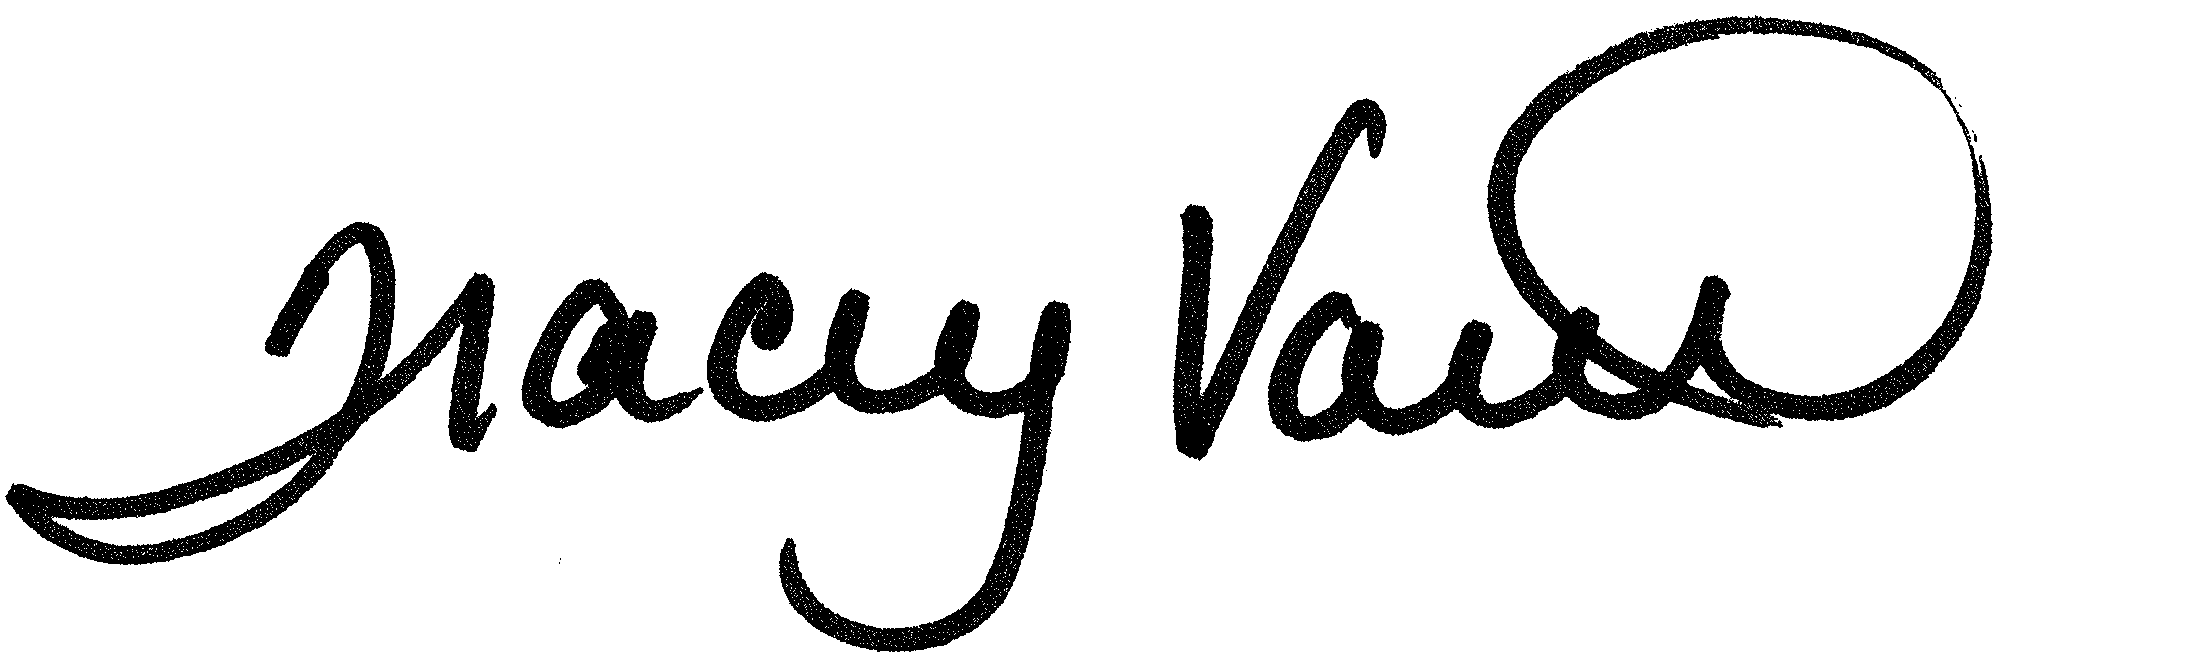 06.05.2015 Tracey Vavrek Electronic Signature